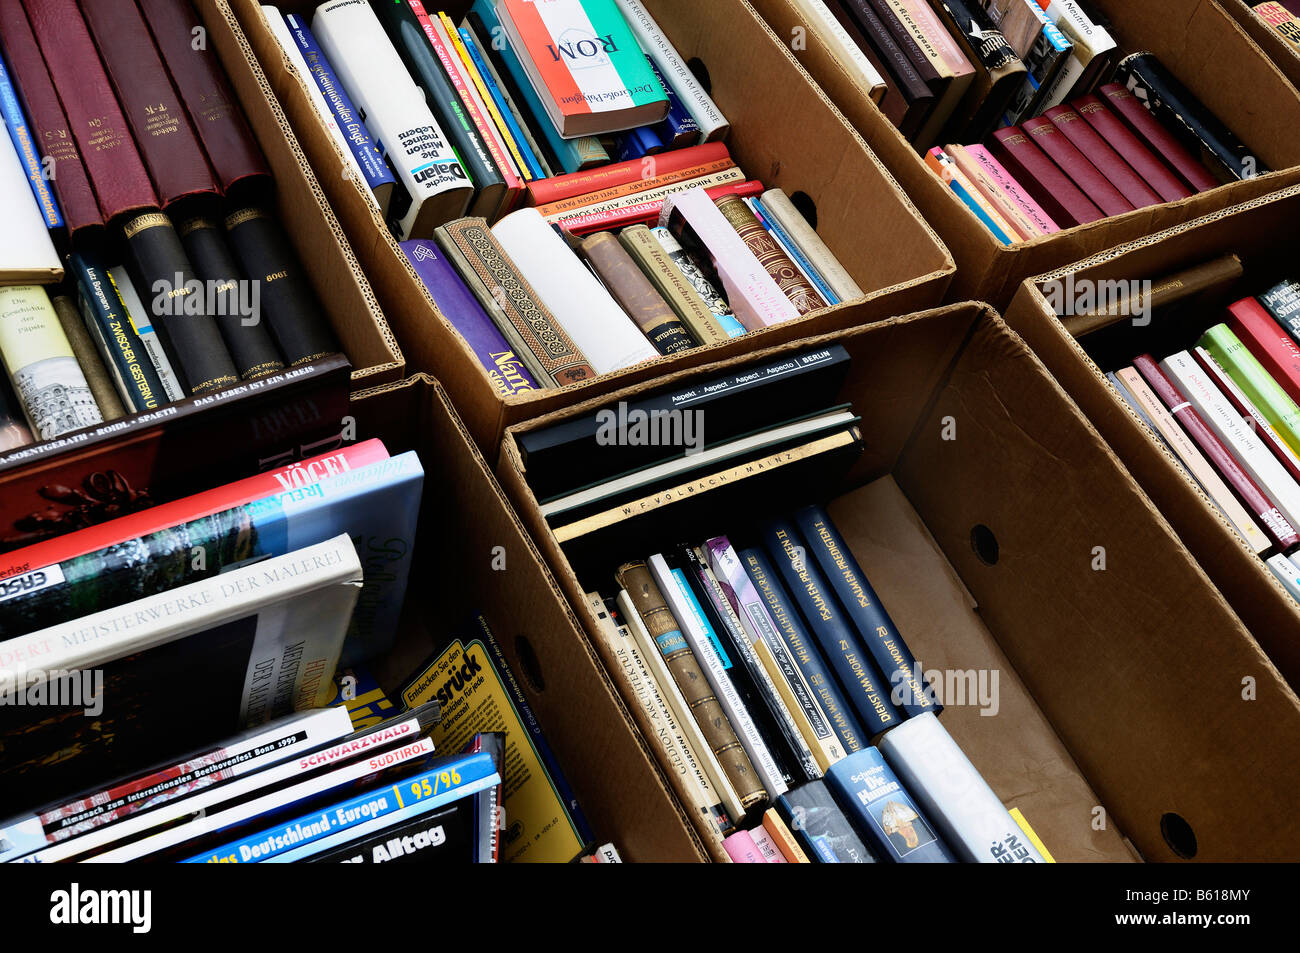 Old books in cardboard boxes, second-hand book market, flea market - Stock Image